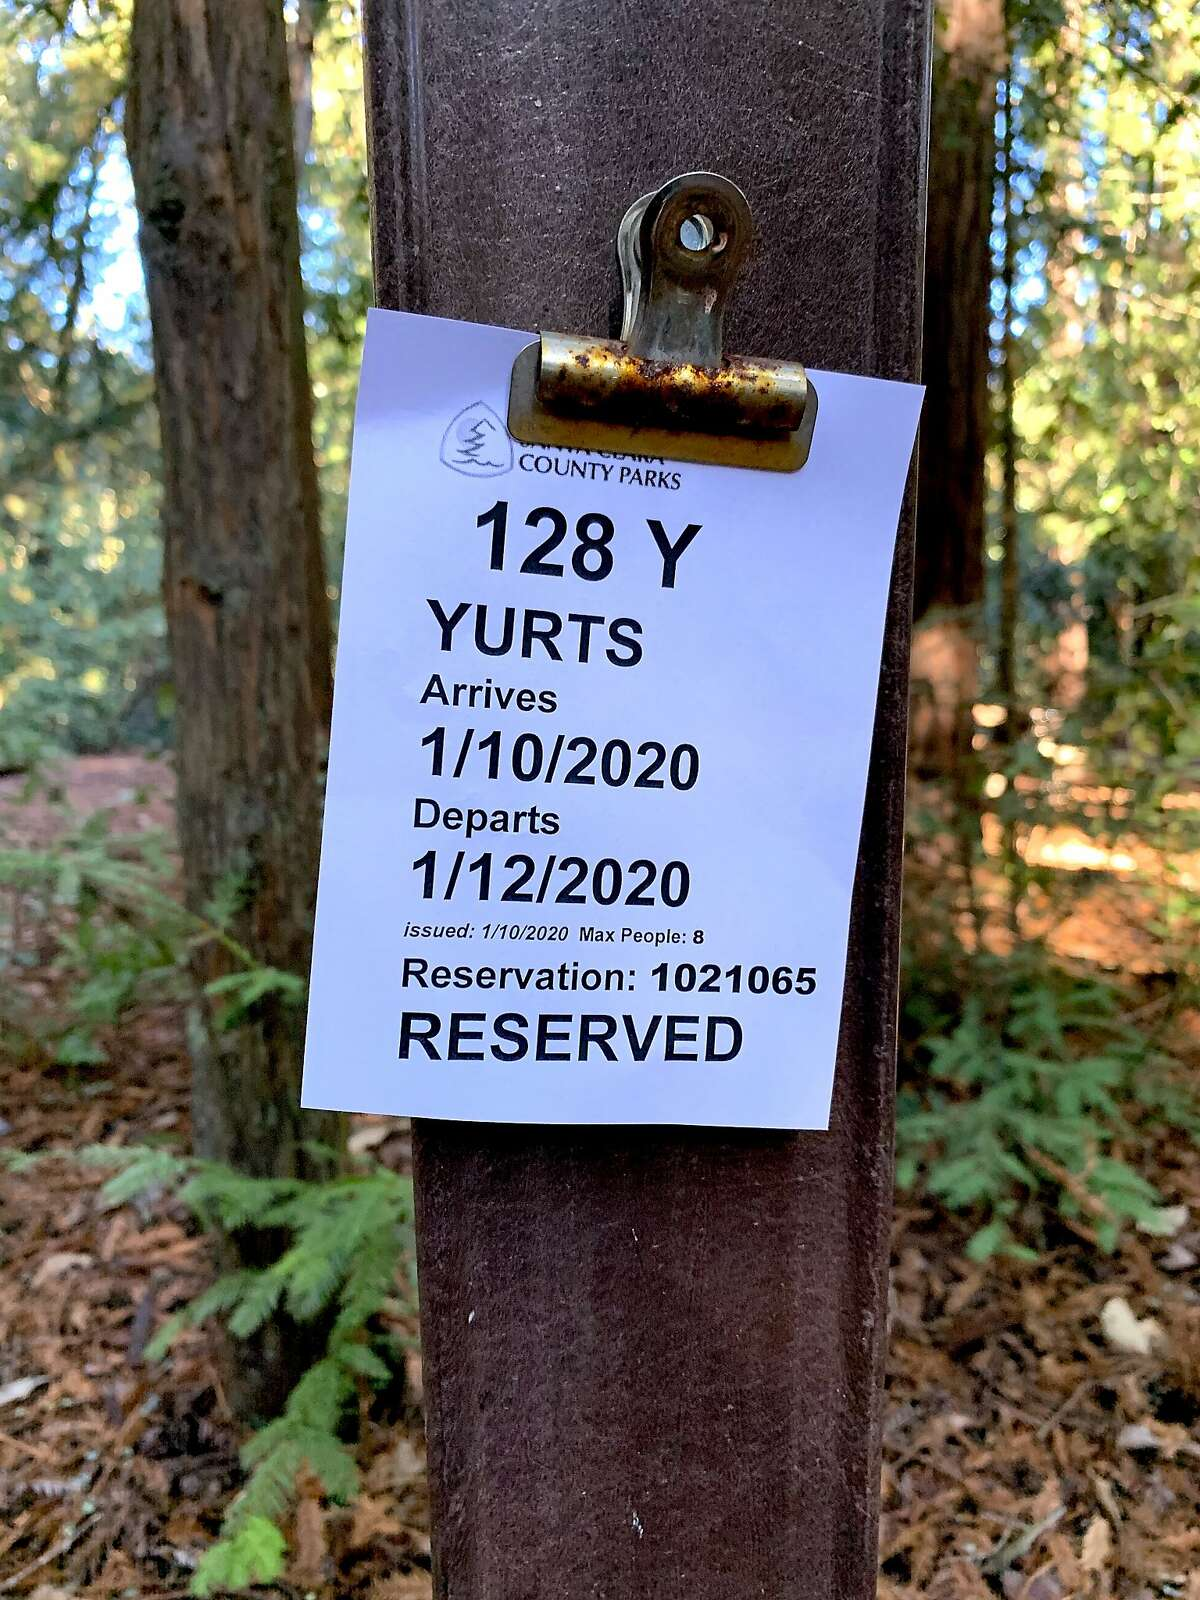 A sticker is affixed at entry of campsite to note yurt reservation and dates